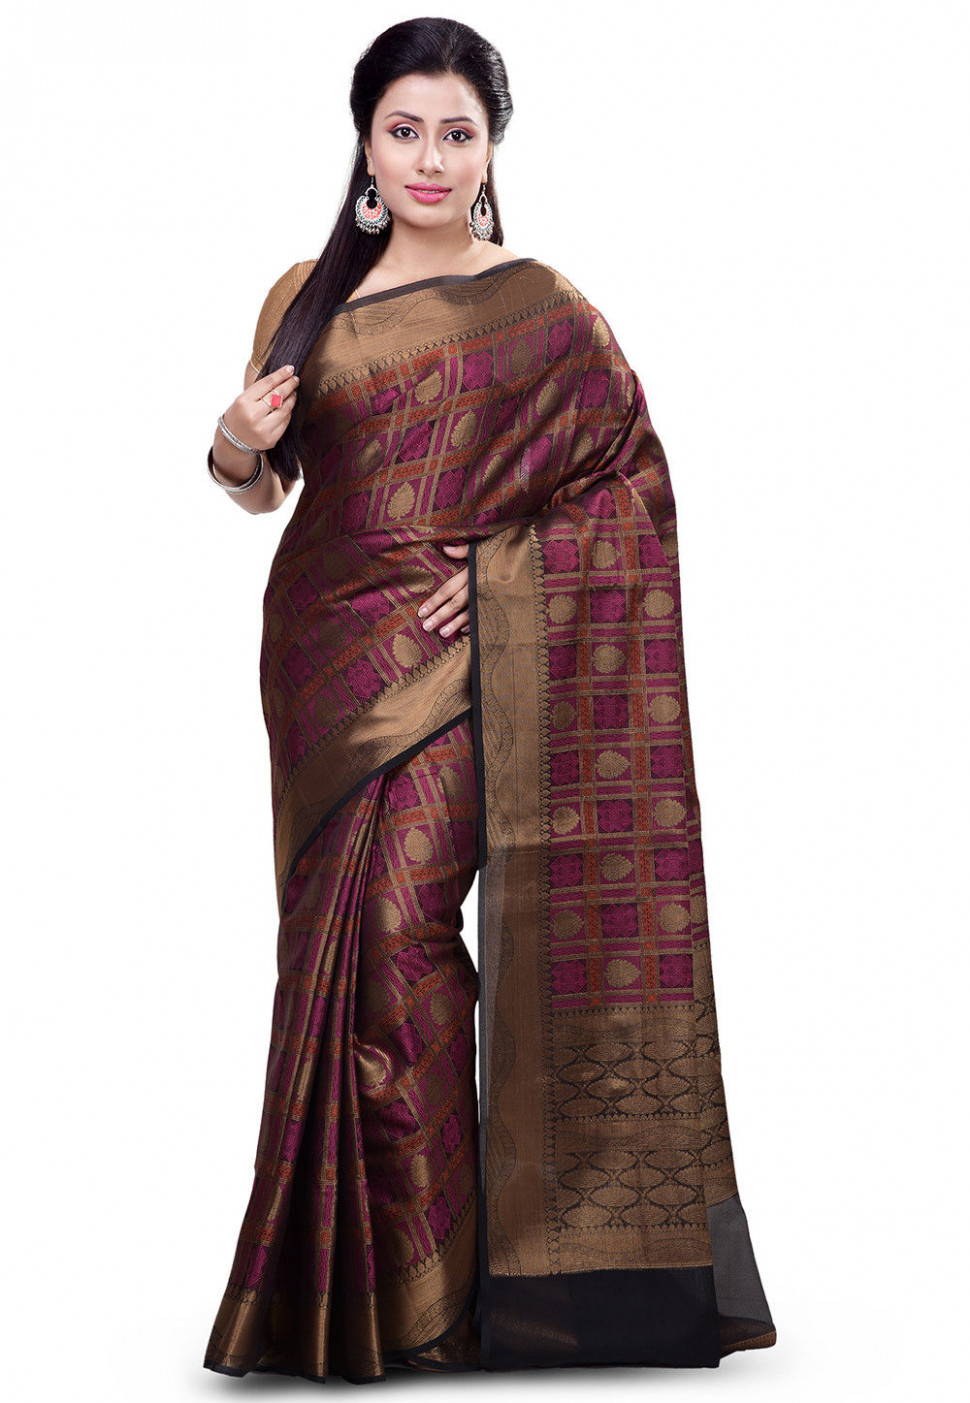 Woven Organza Silk Saree in Black and Fuchsia : SFKA1612